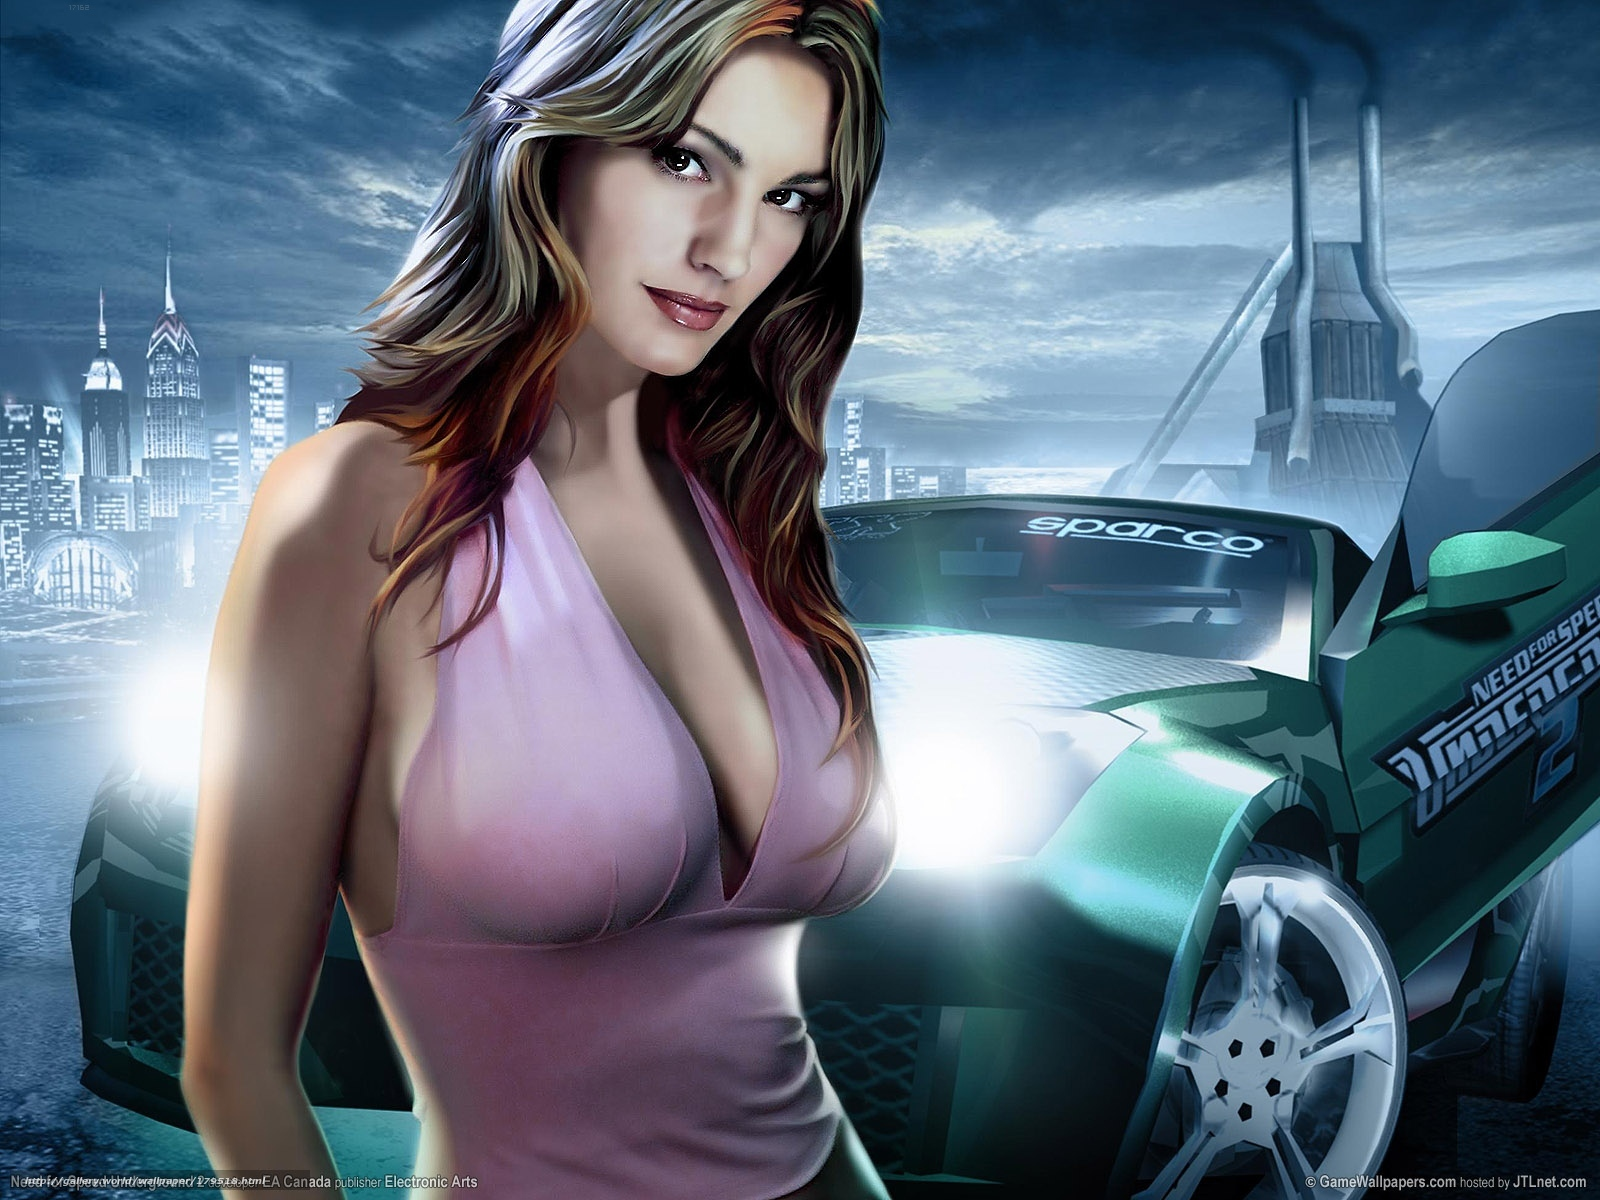 How to make girls naked on nfsu naked picture